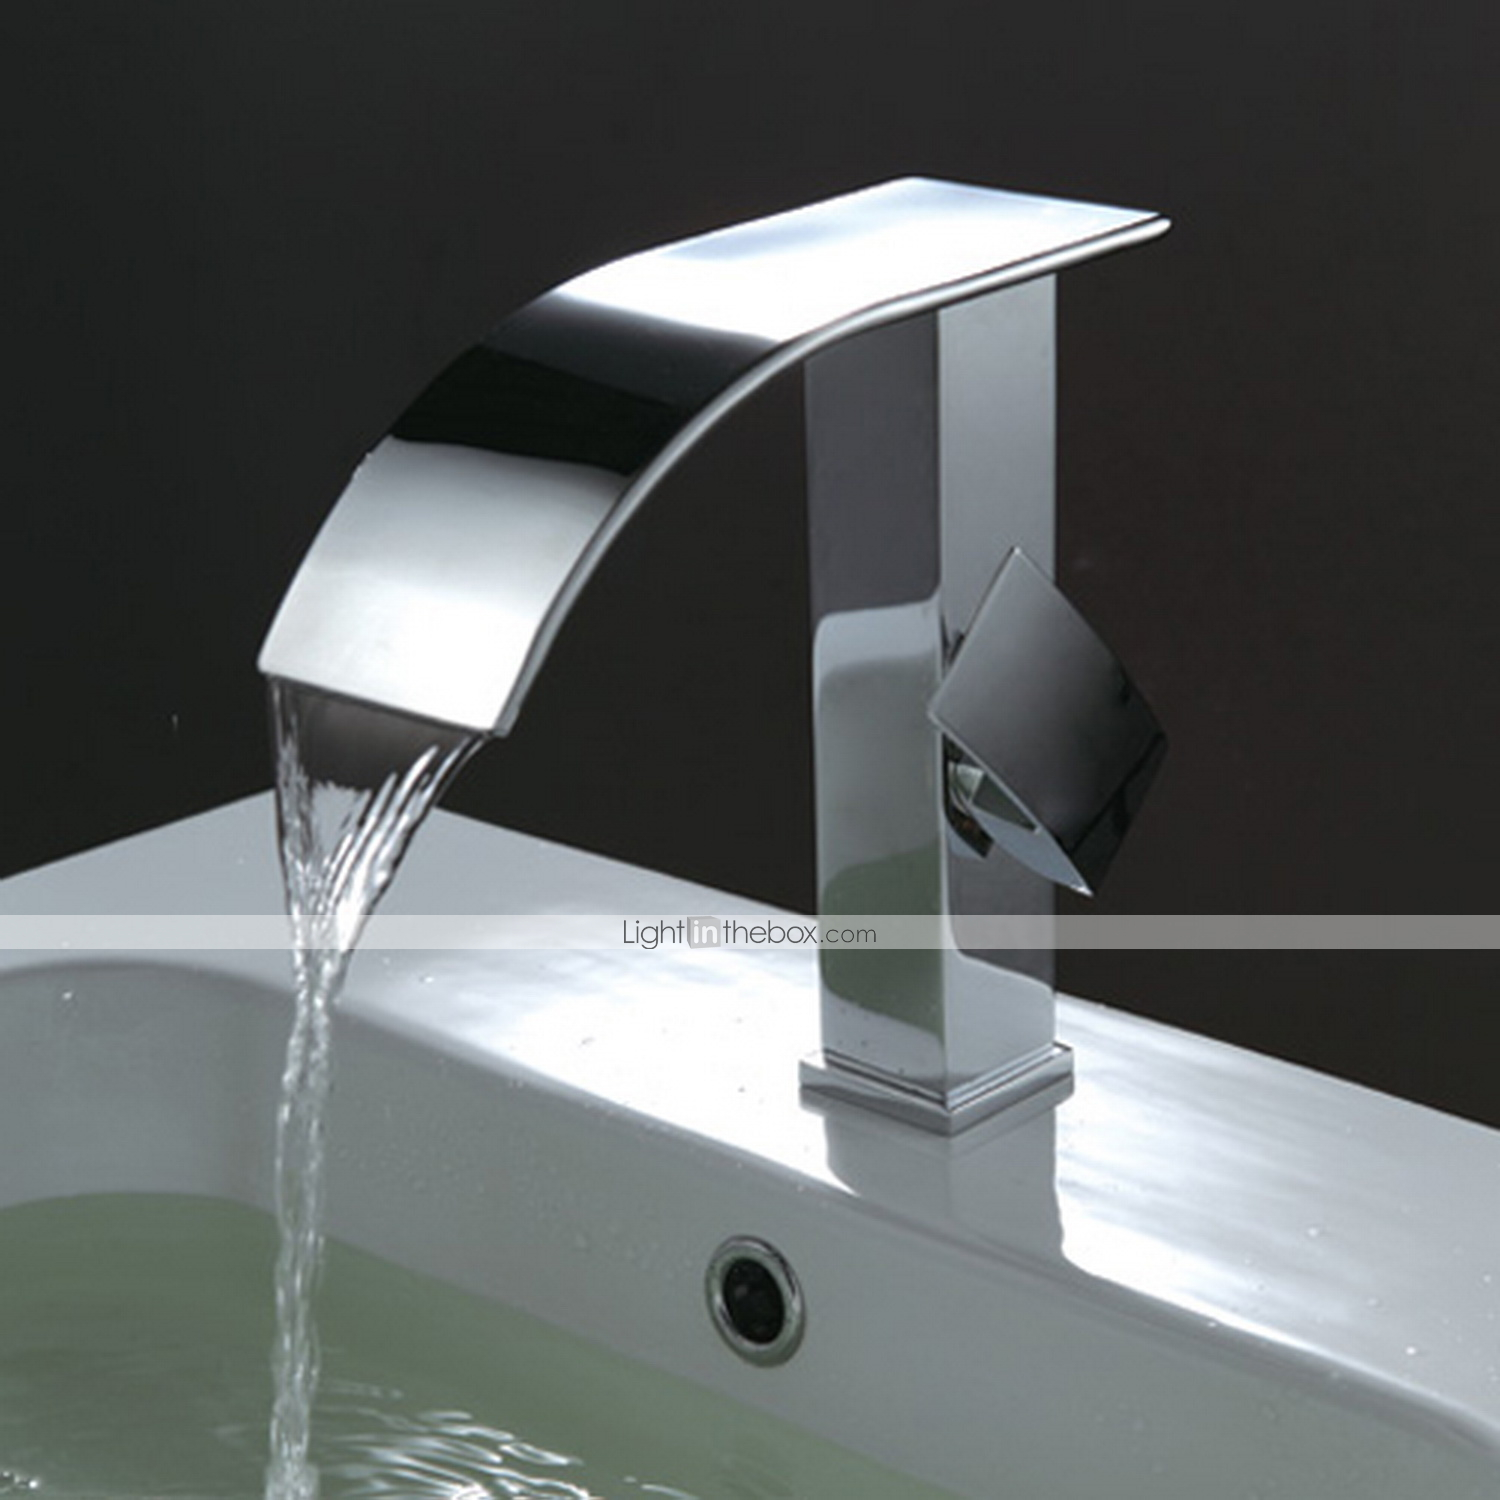 Bathroom sink faucet contemporary design waterfall faucet - Grifo lavabo cascada ...